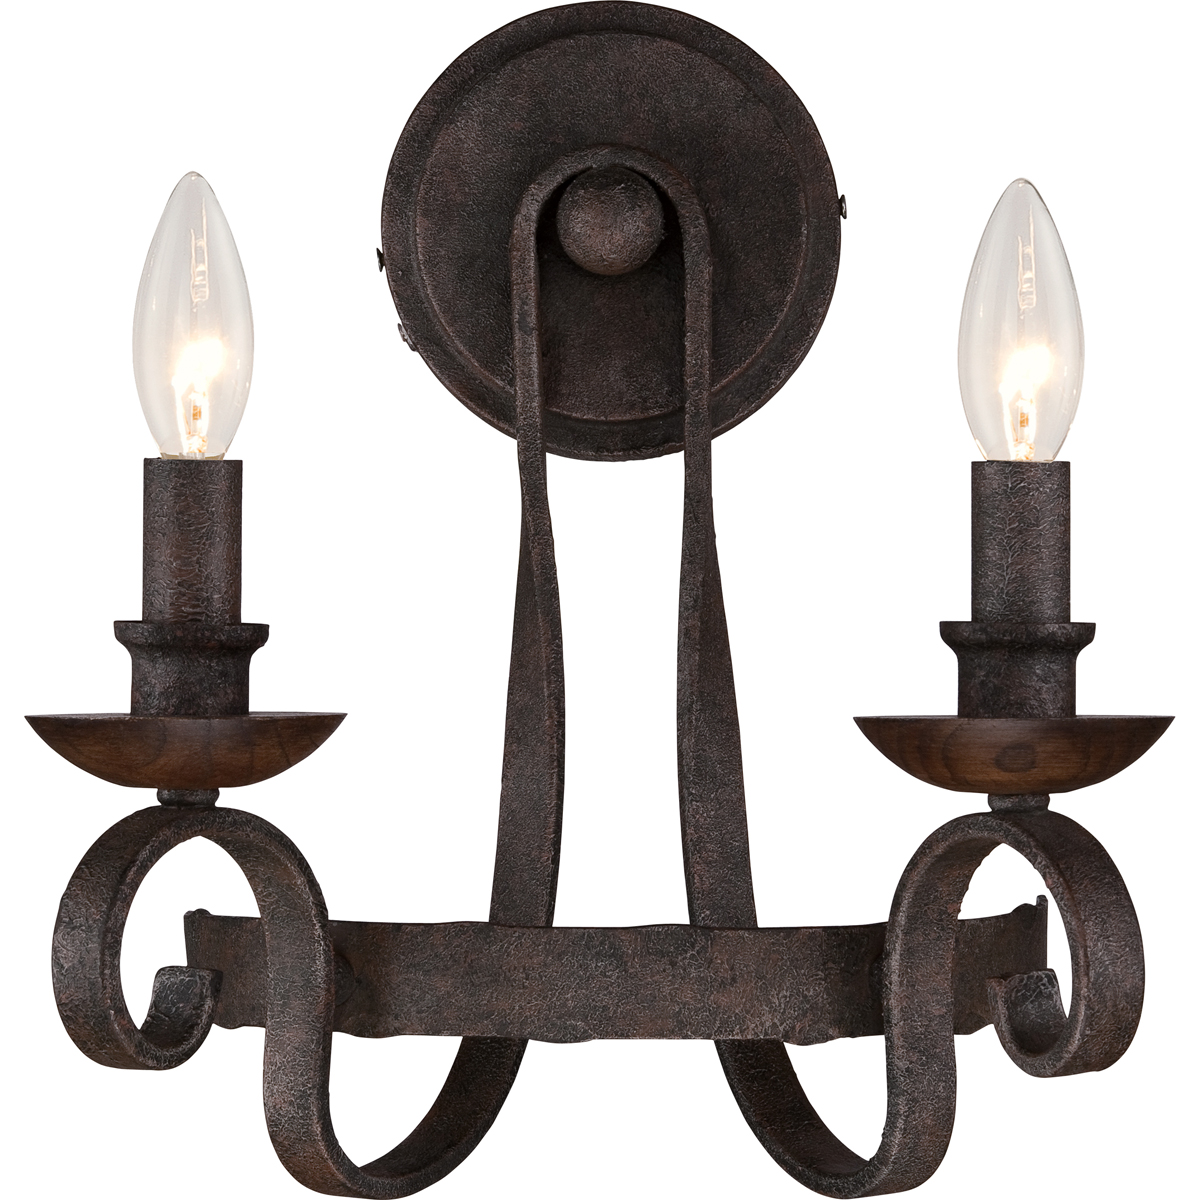 Black Rustic Wall Lights : Quoizel Lighting (NBE8702RK) Noble 2-Light Wall Sconce in Rustic Black